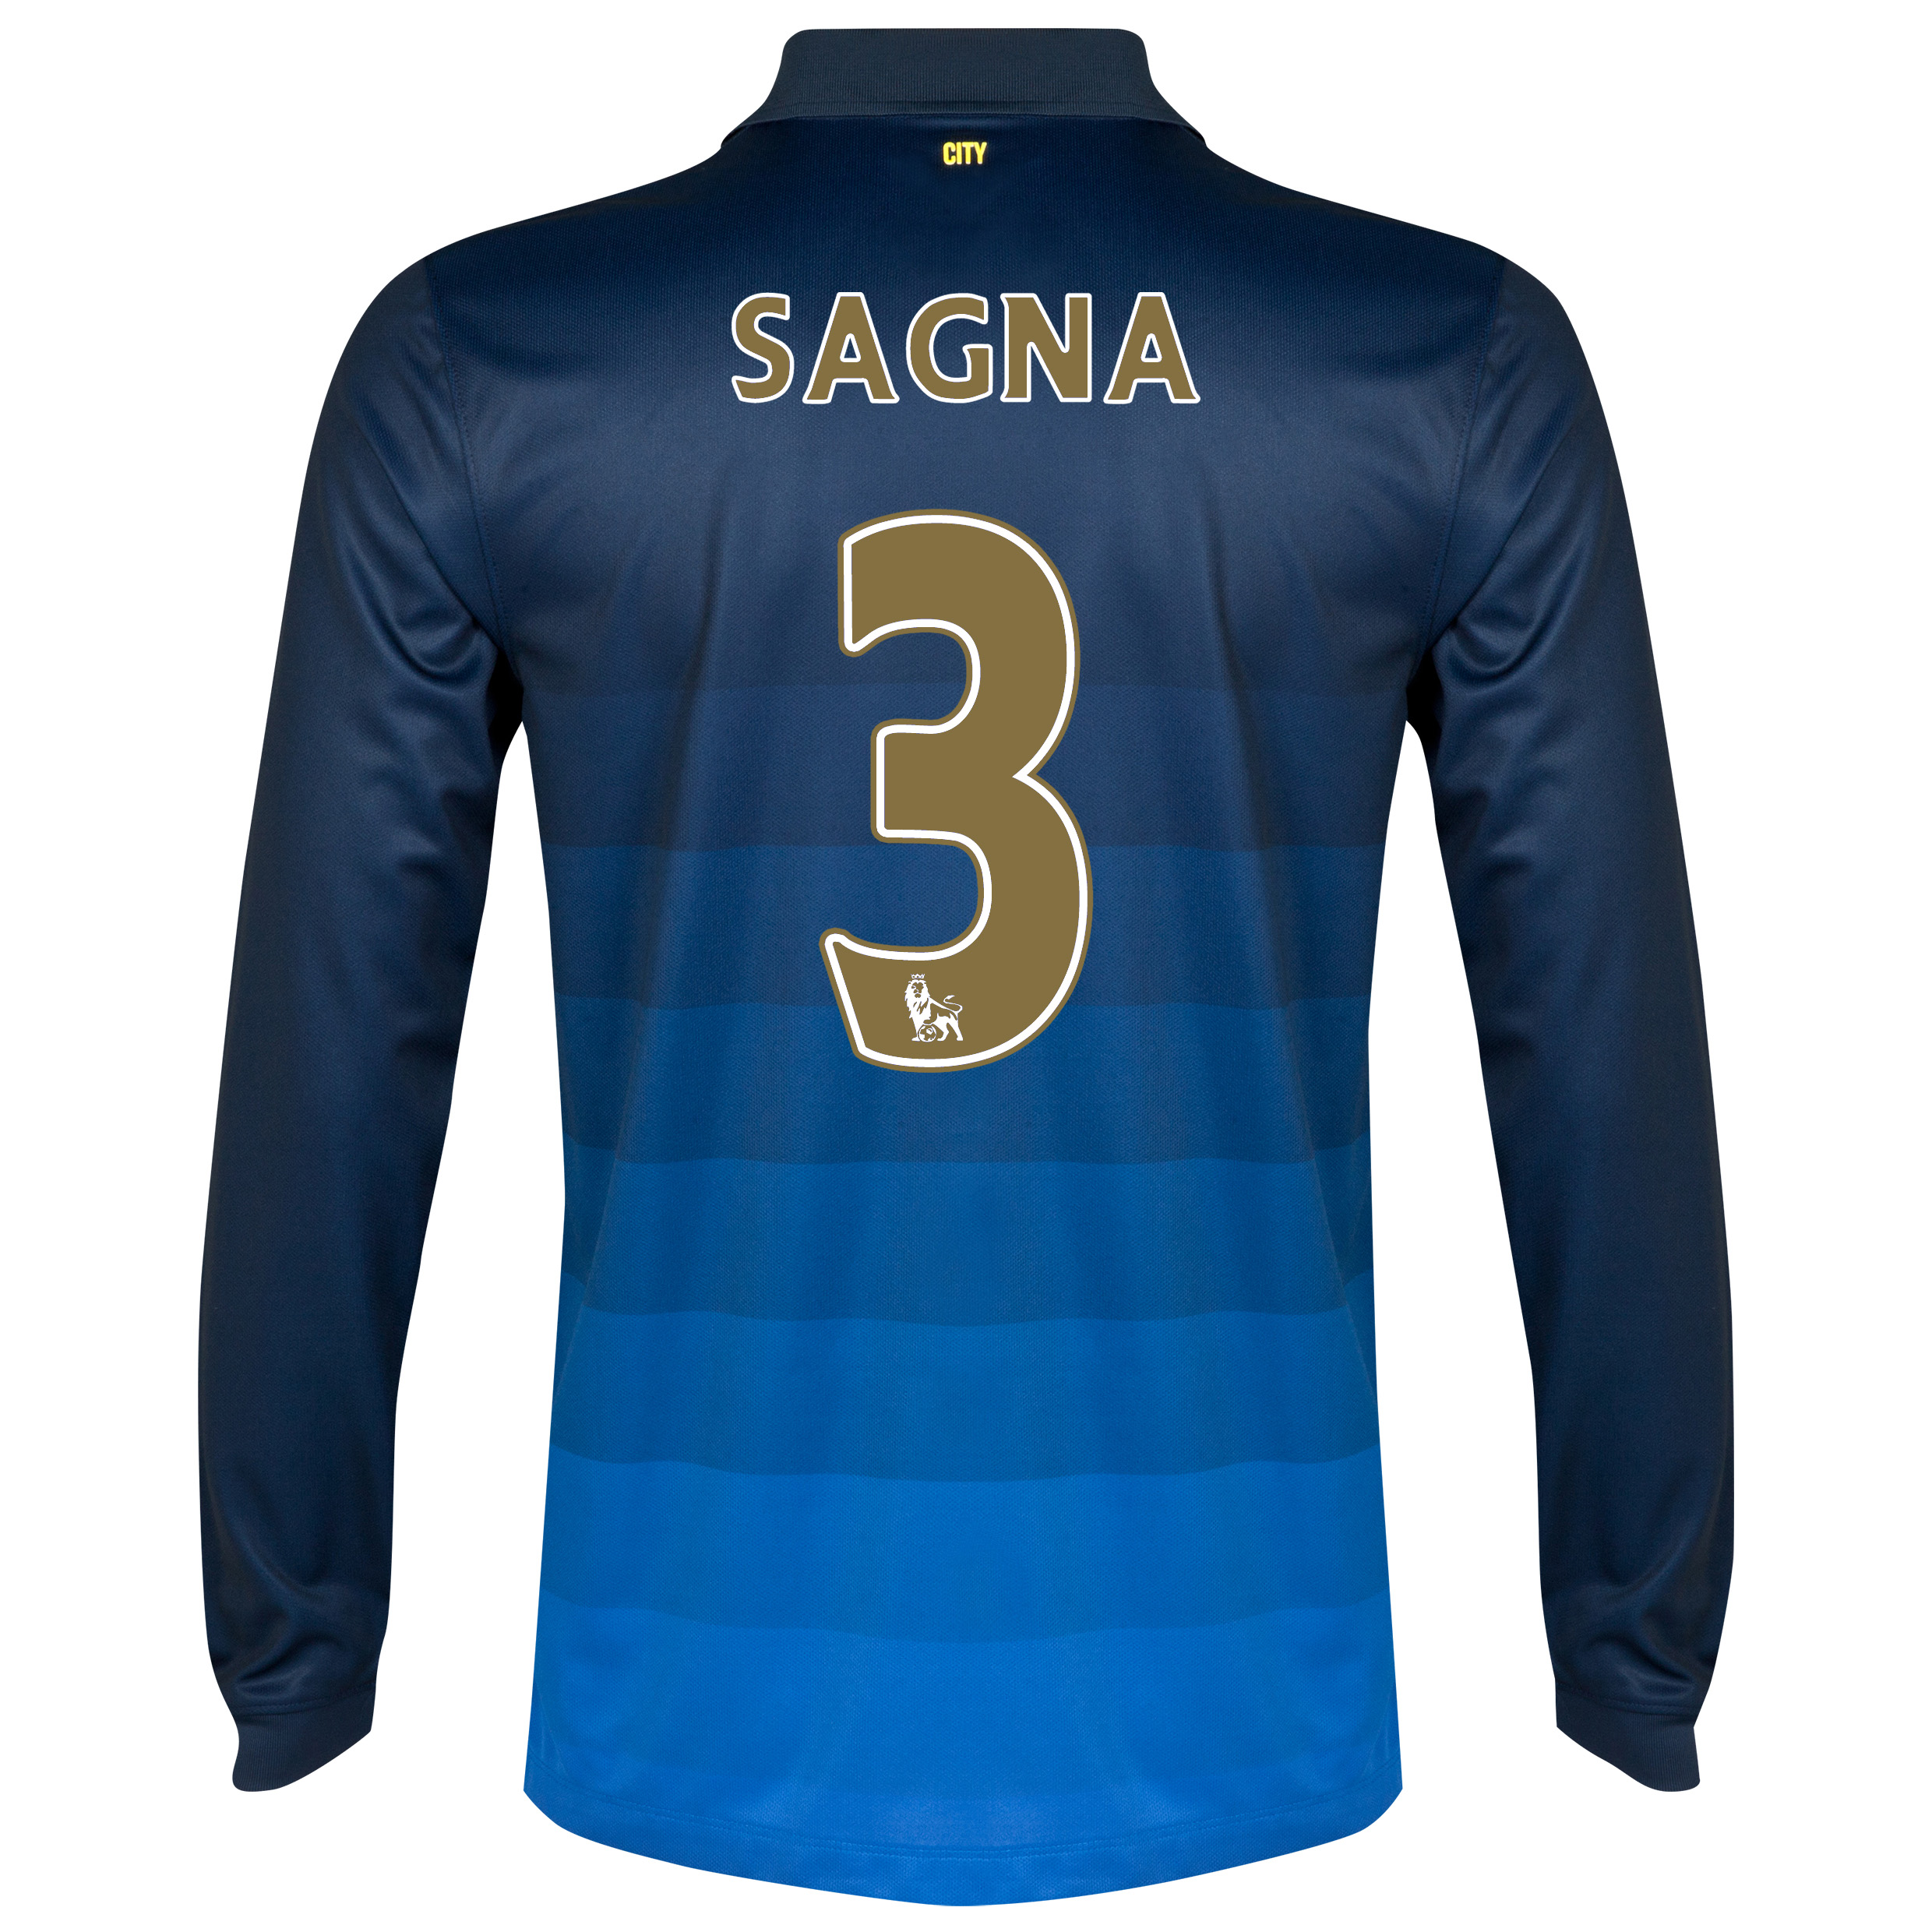 Manchester City Away Shirt 2014/15 - Long Sleeve Dk Blue with Sagna 3 printing